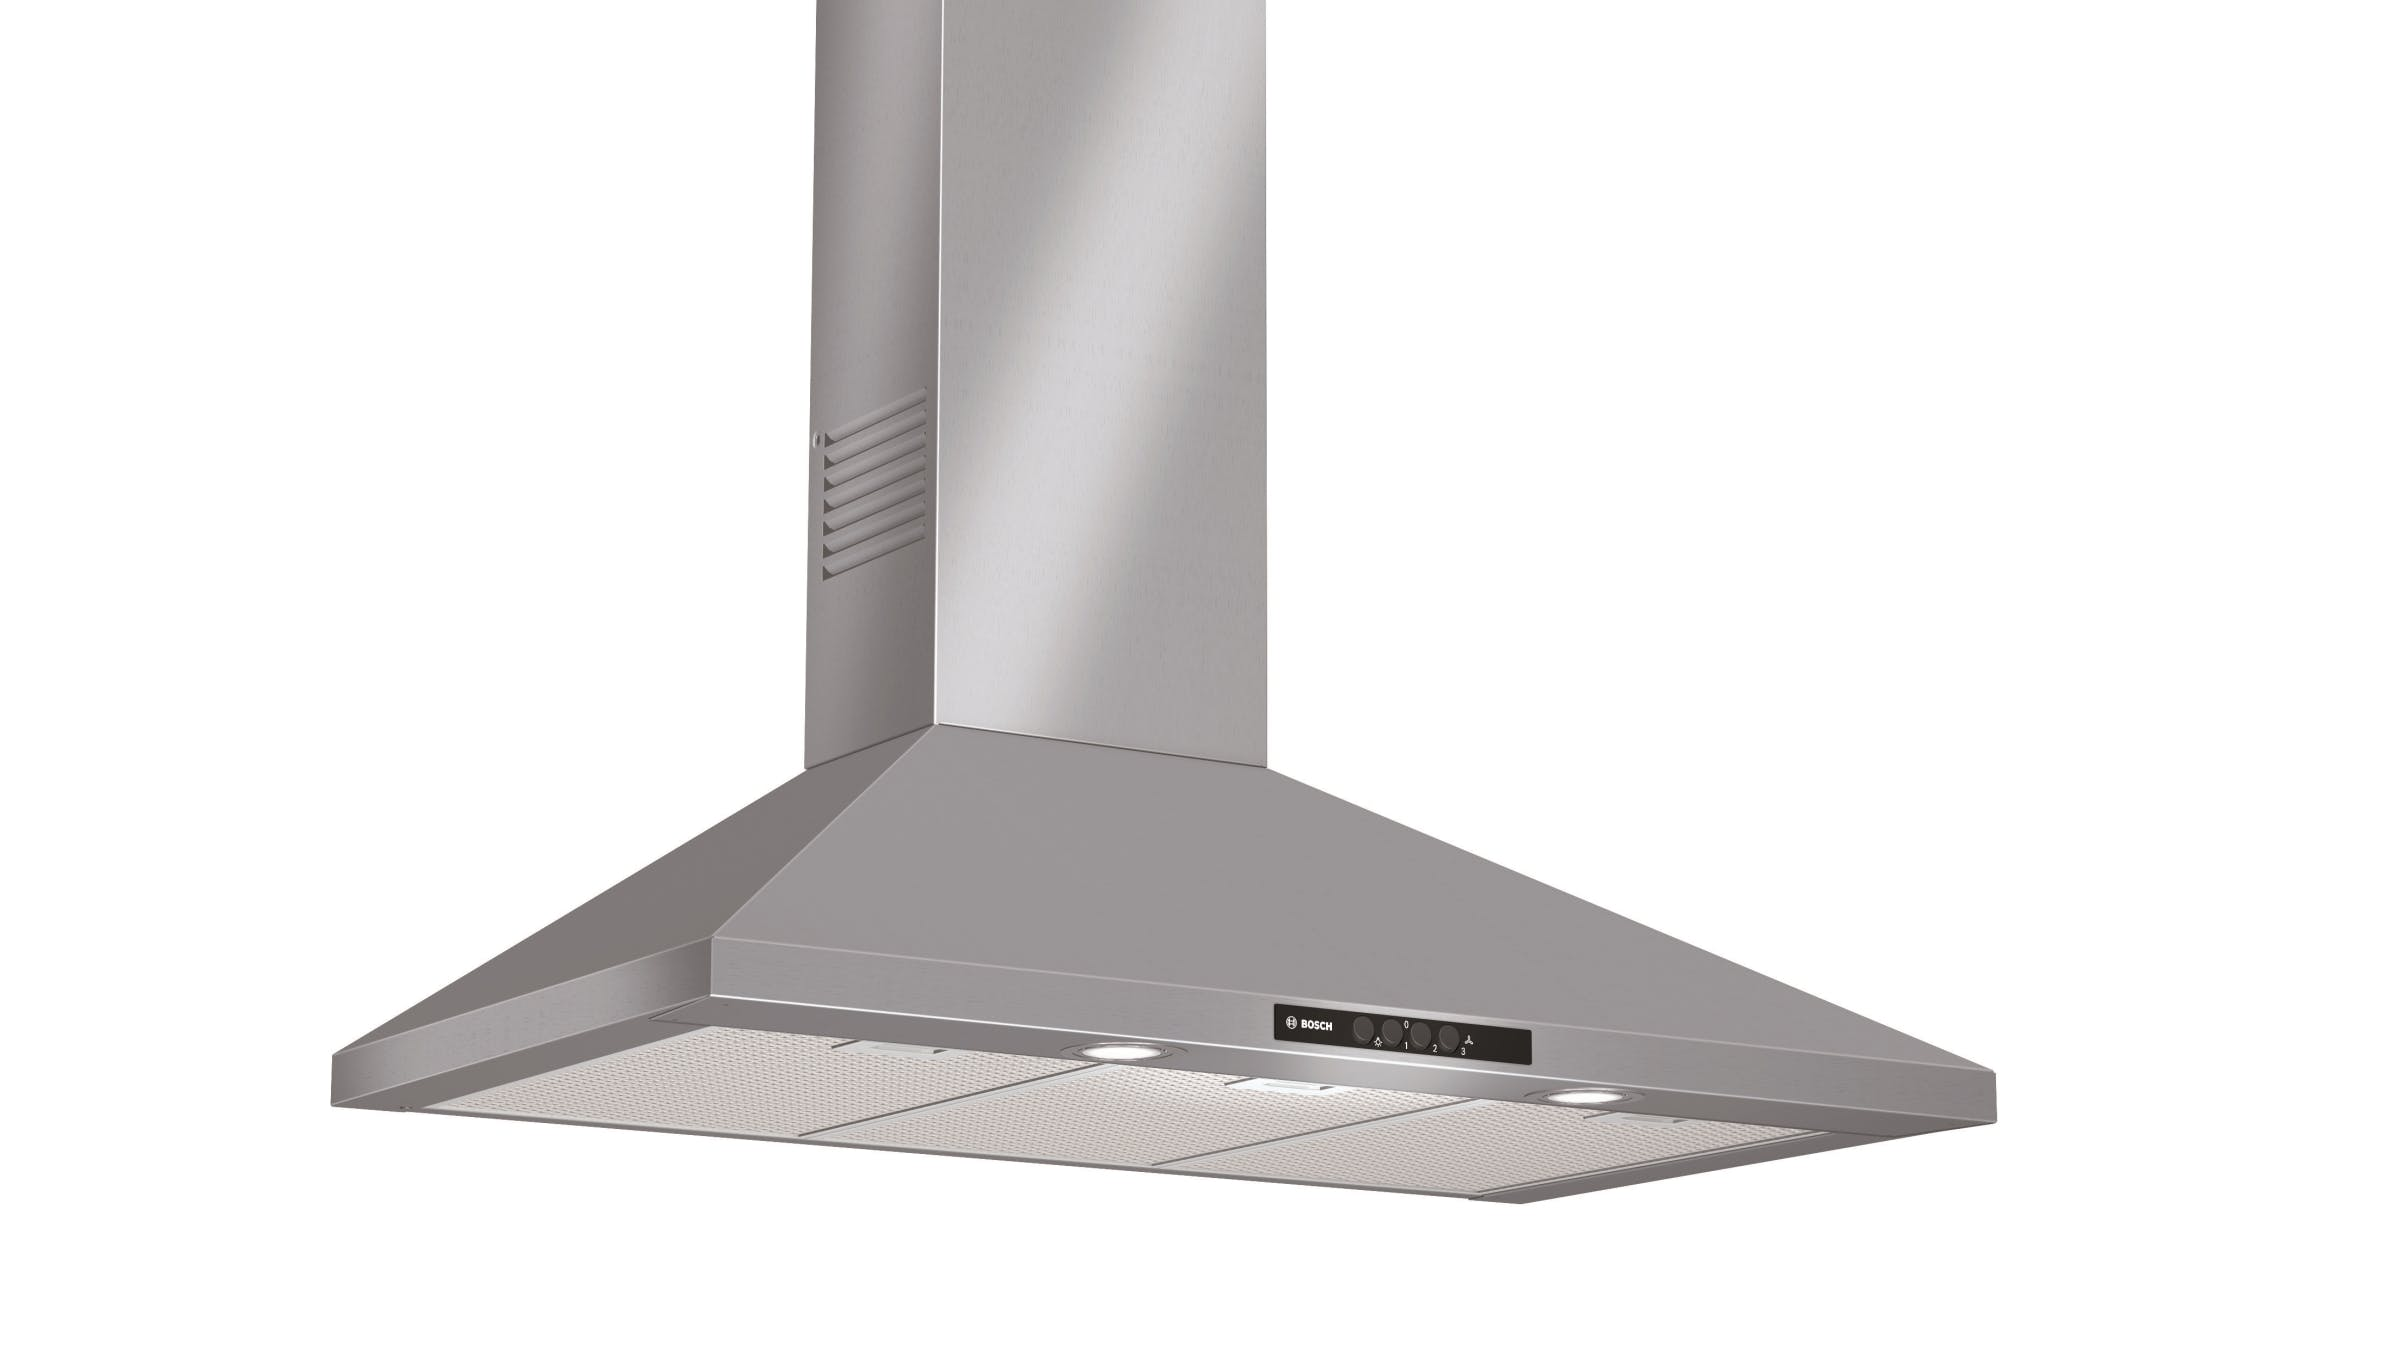 Kitchen Hood Appliances Hood Cooker Hood Kitchen Hood Harvey Norman Singapore